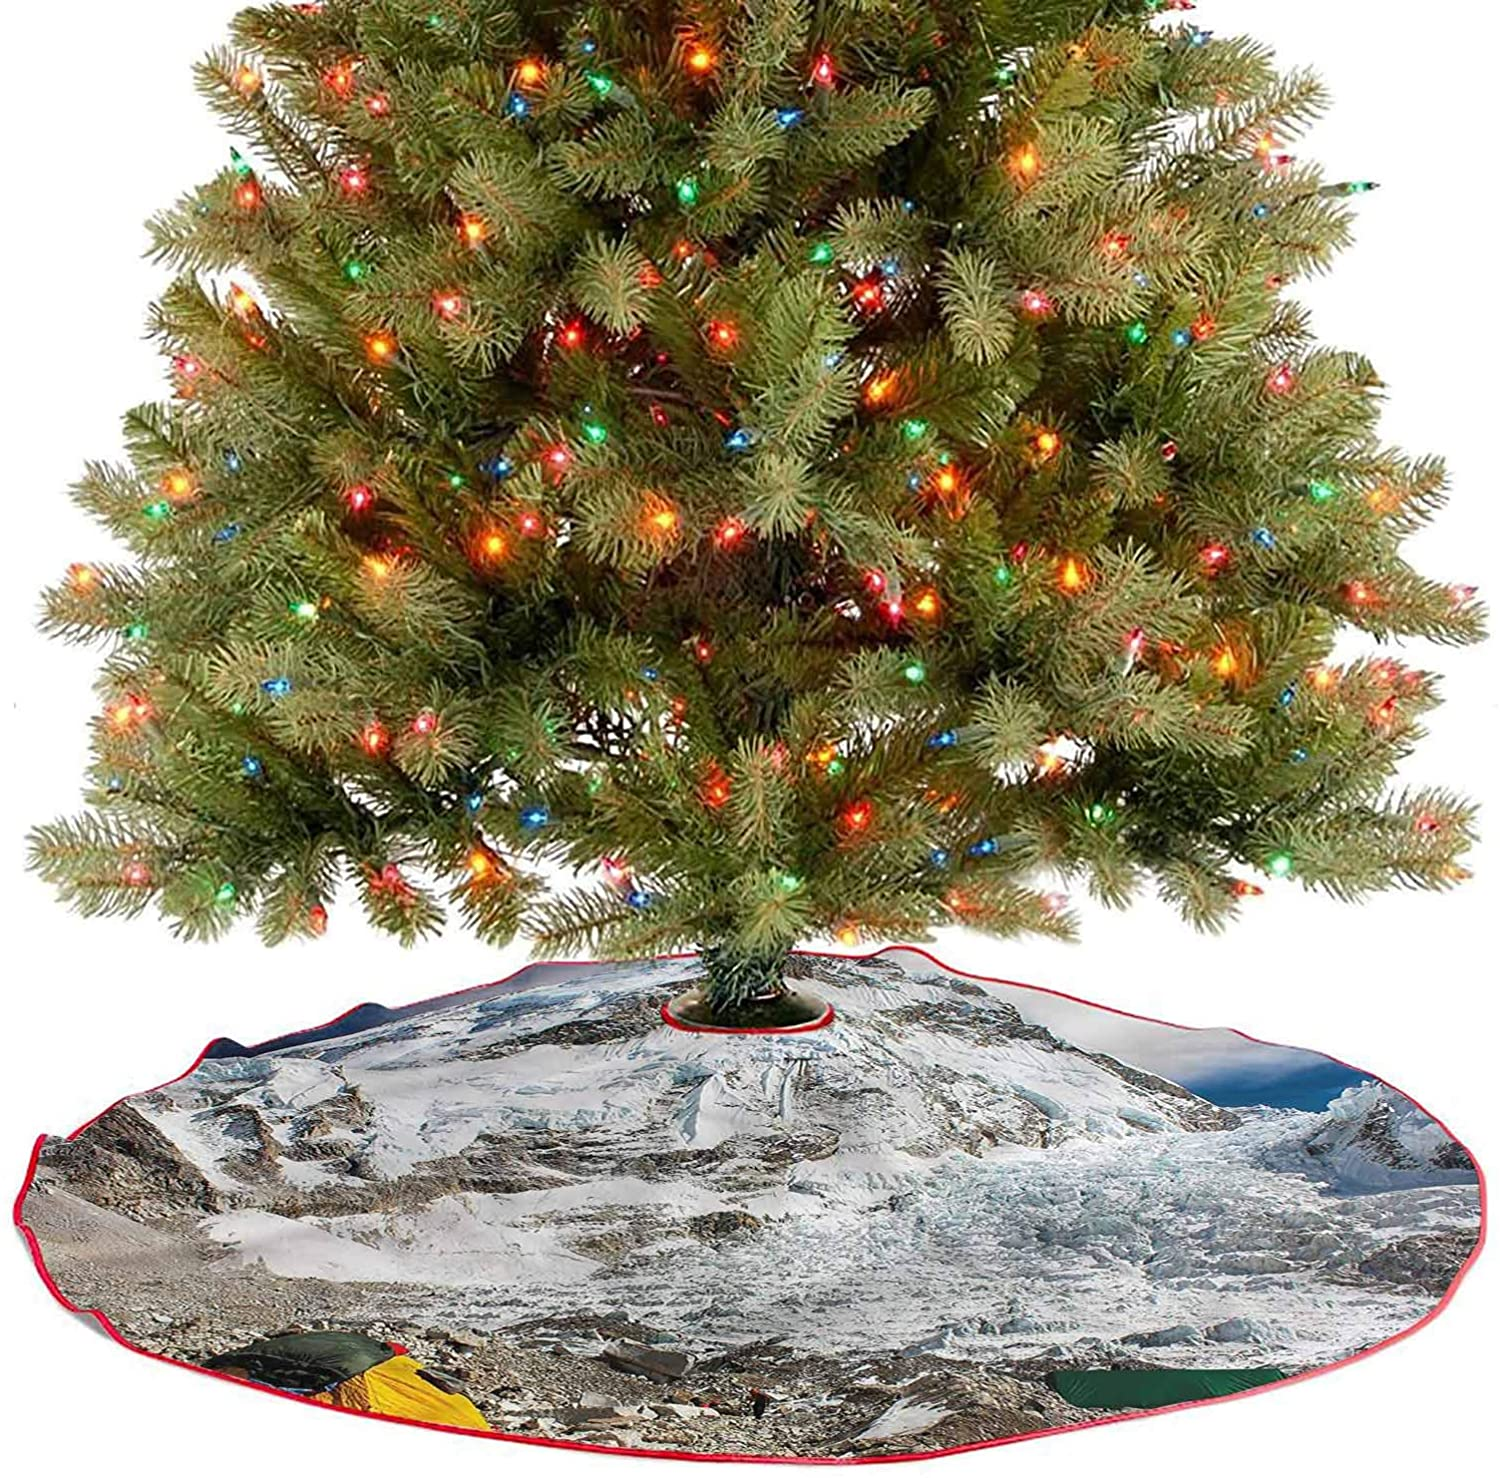 ThinkingPower Christmas Tree Skirt Decorations Snowy Mountain Everest Peak 2020 New Christmas Tree Skirt Decoration for Xmas New Year Holiday Party Home Diameter - 48 Inch